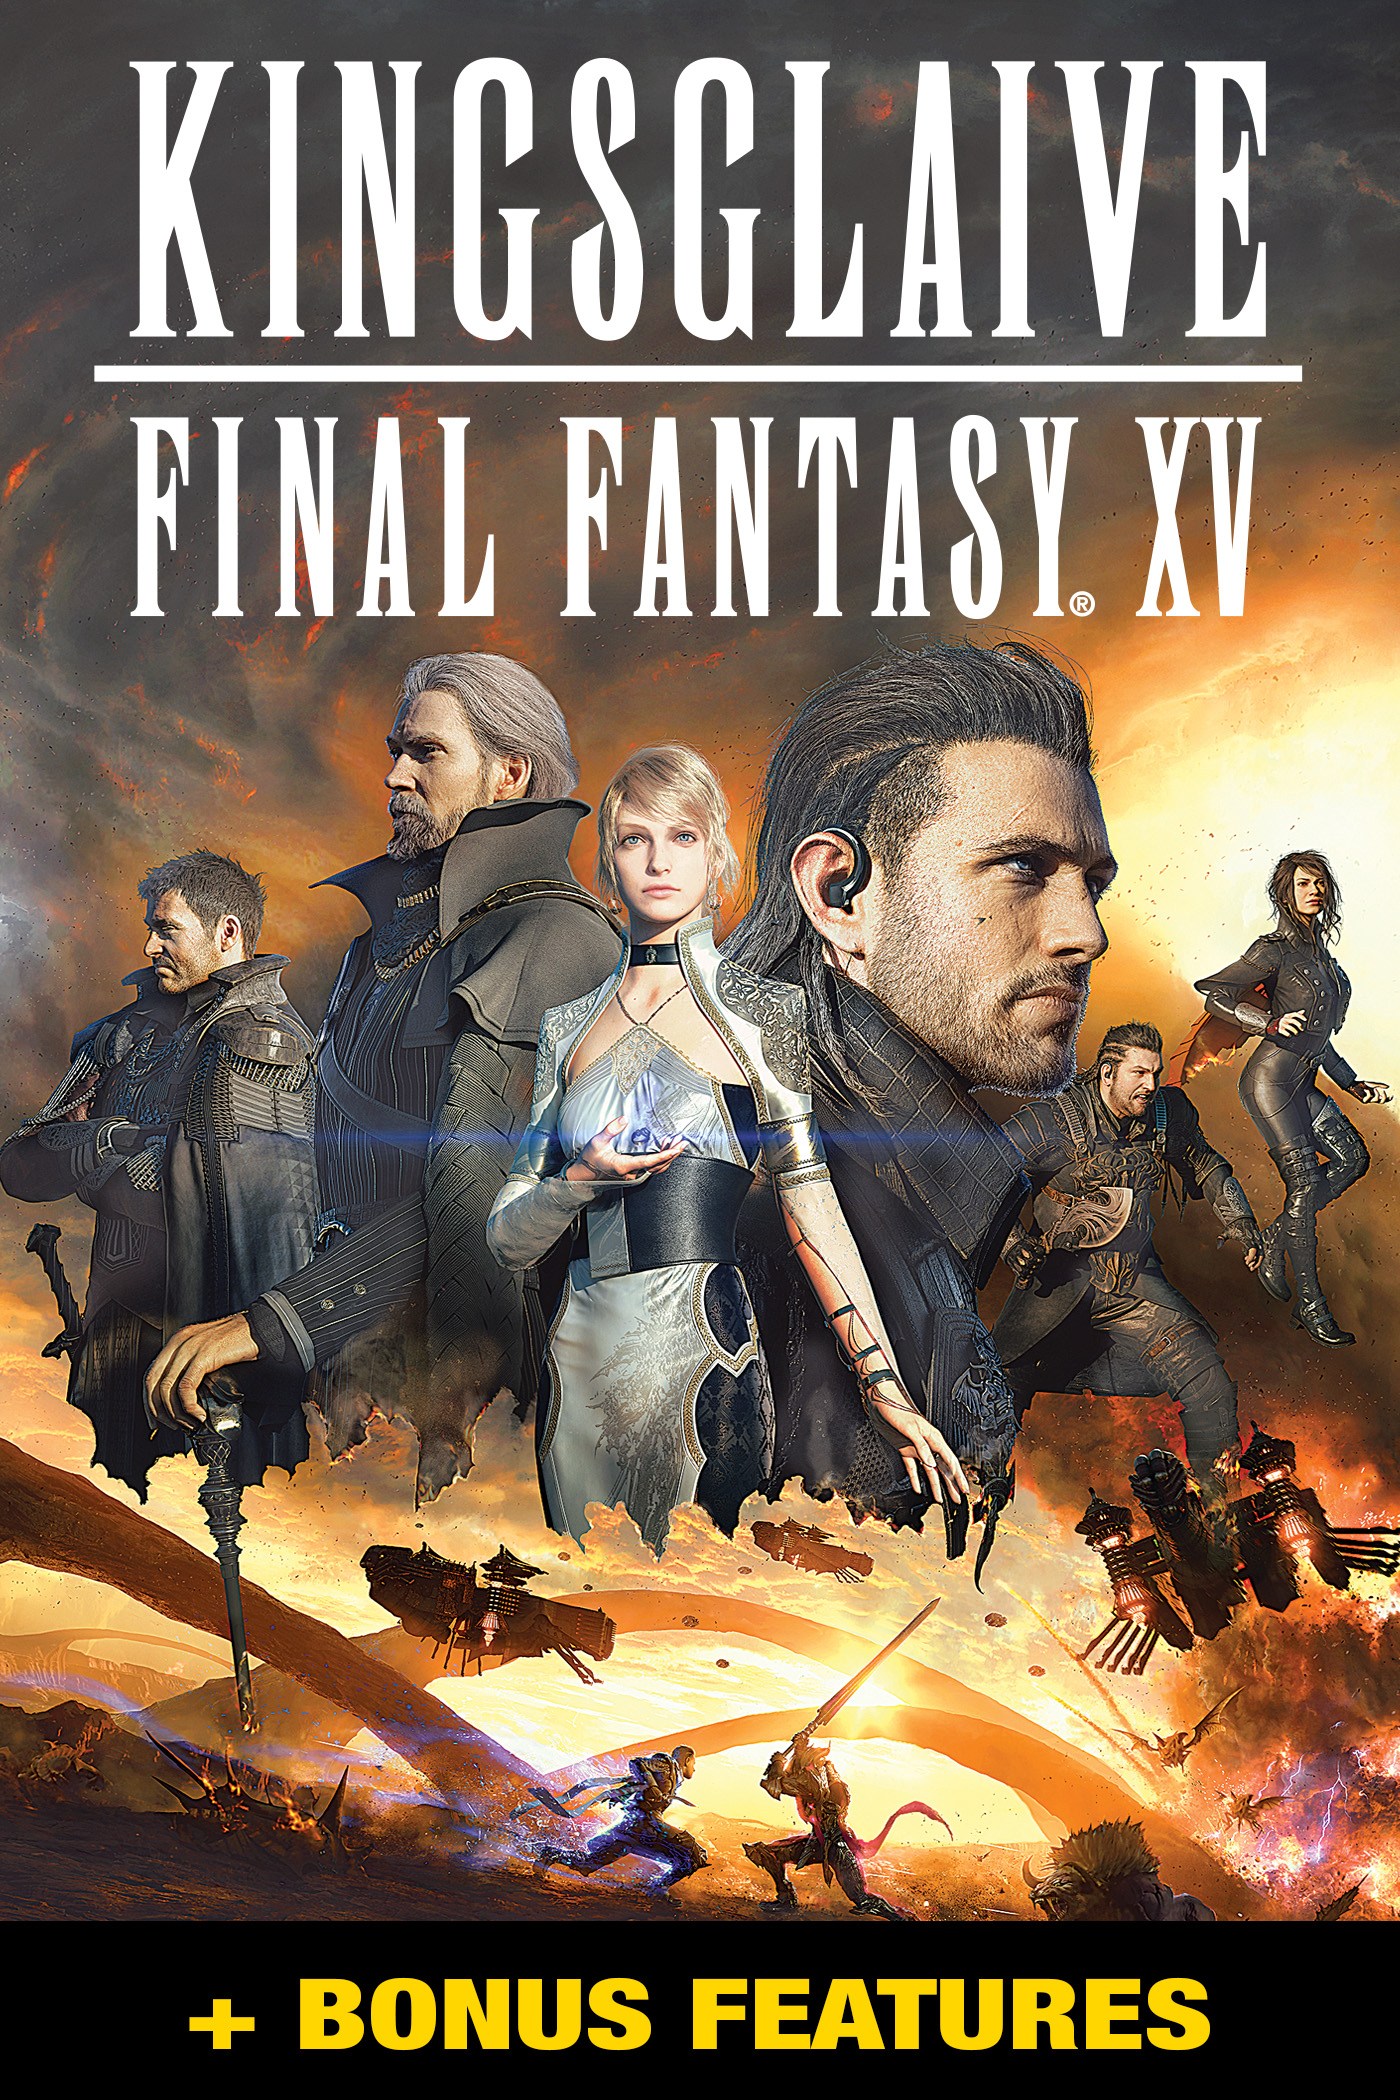 Final Fantasy: Kingsglaive + Bonus